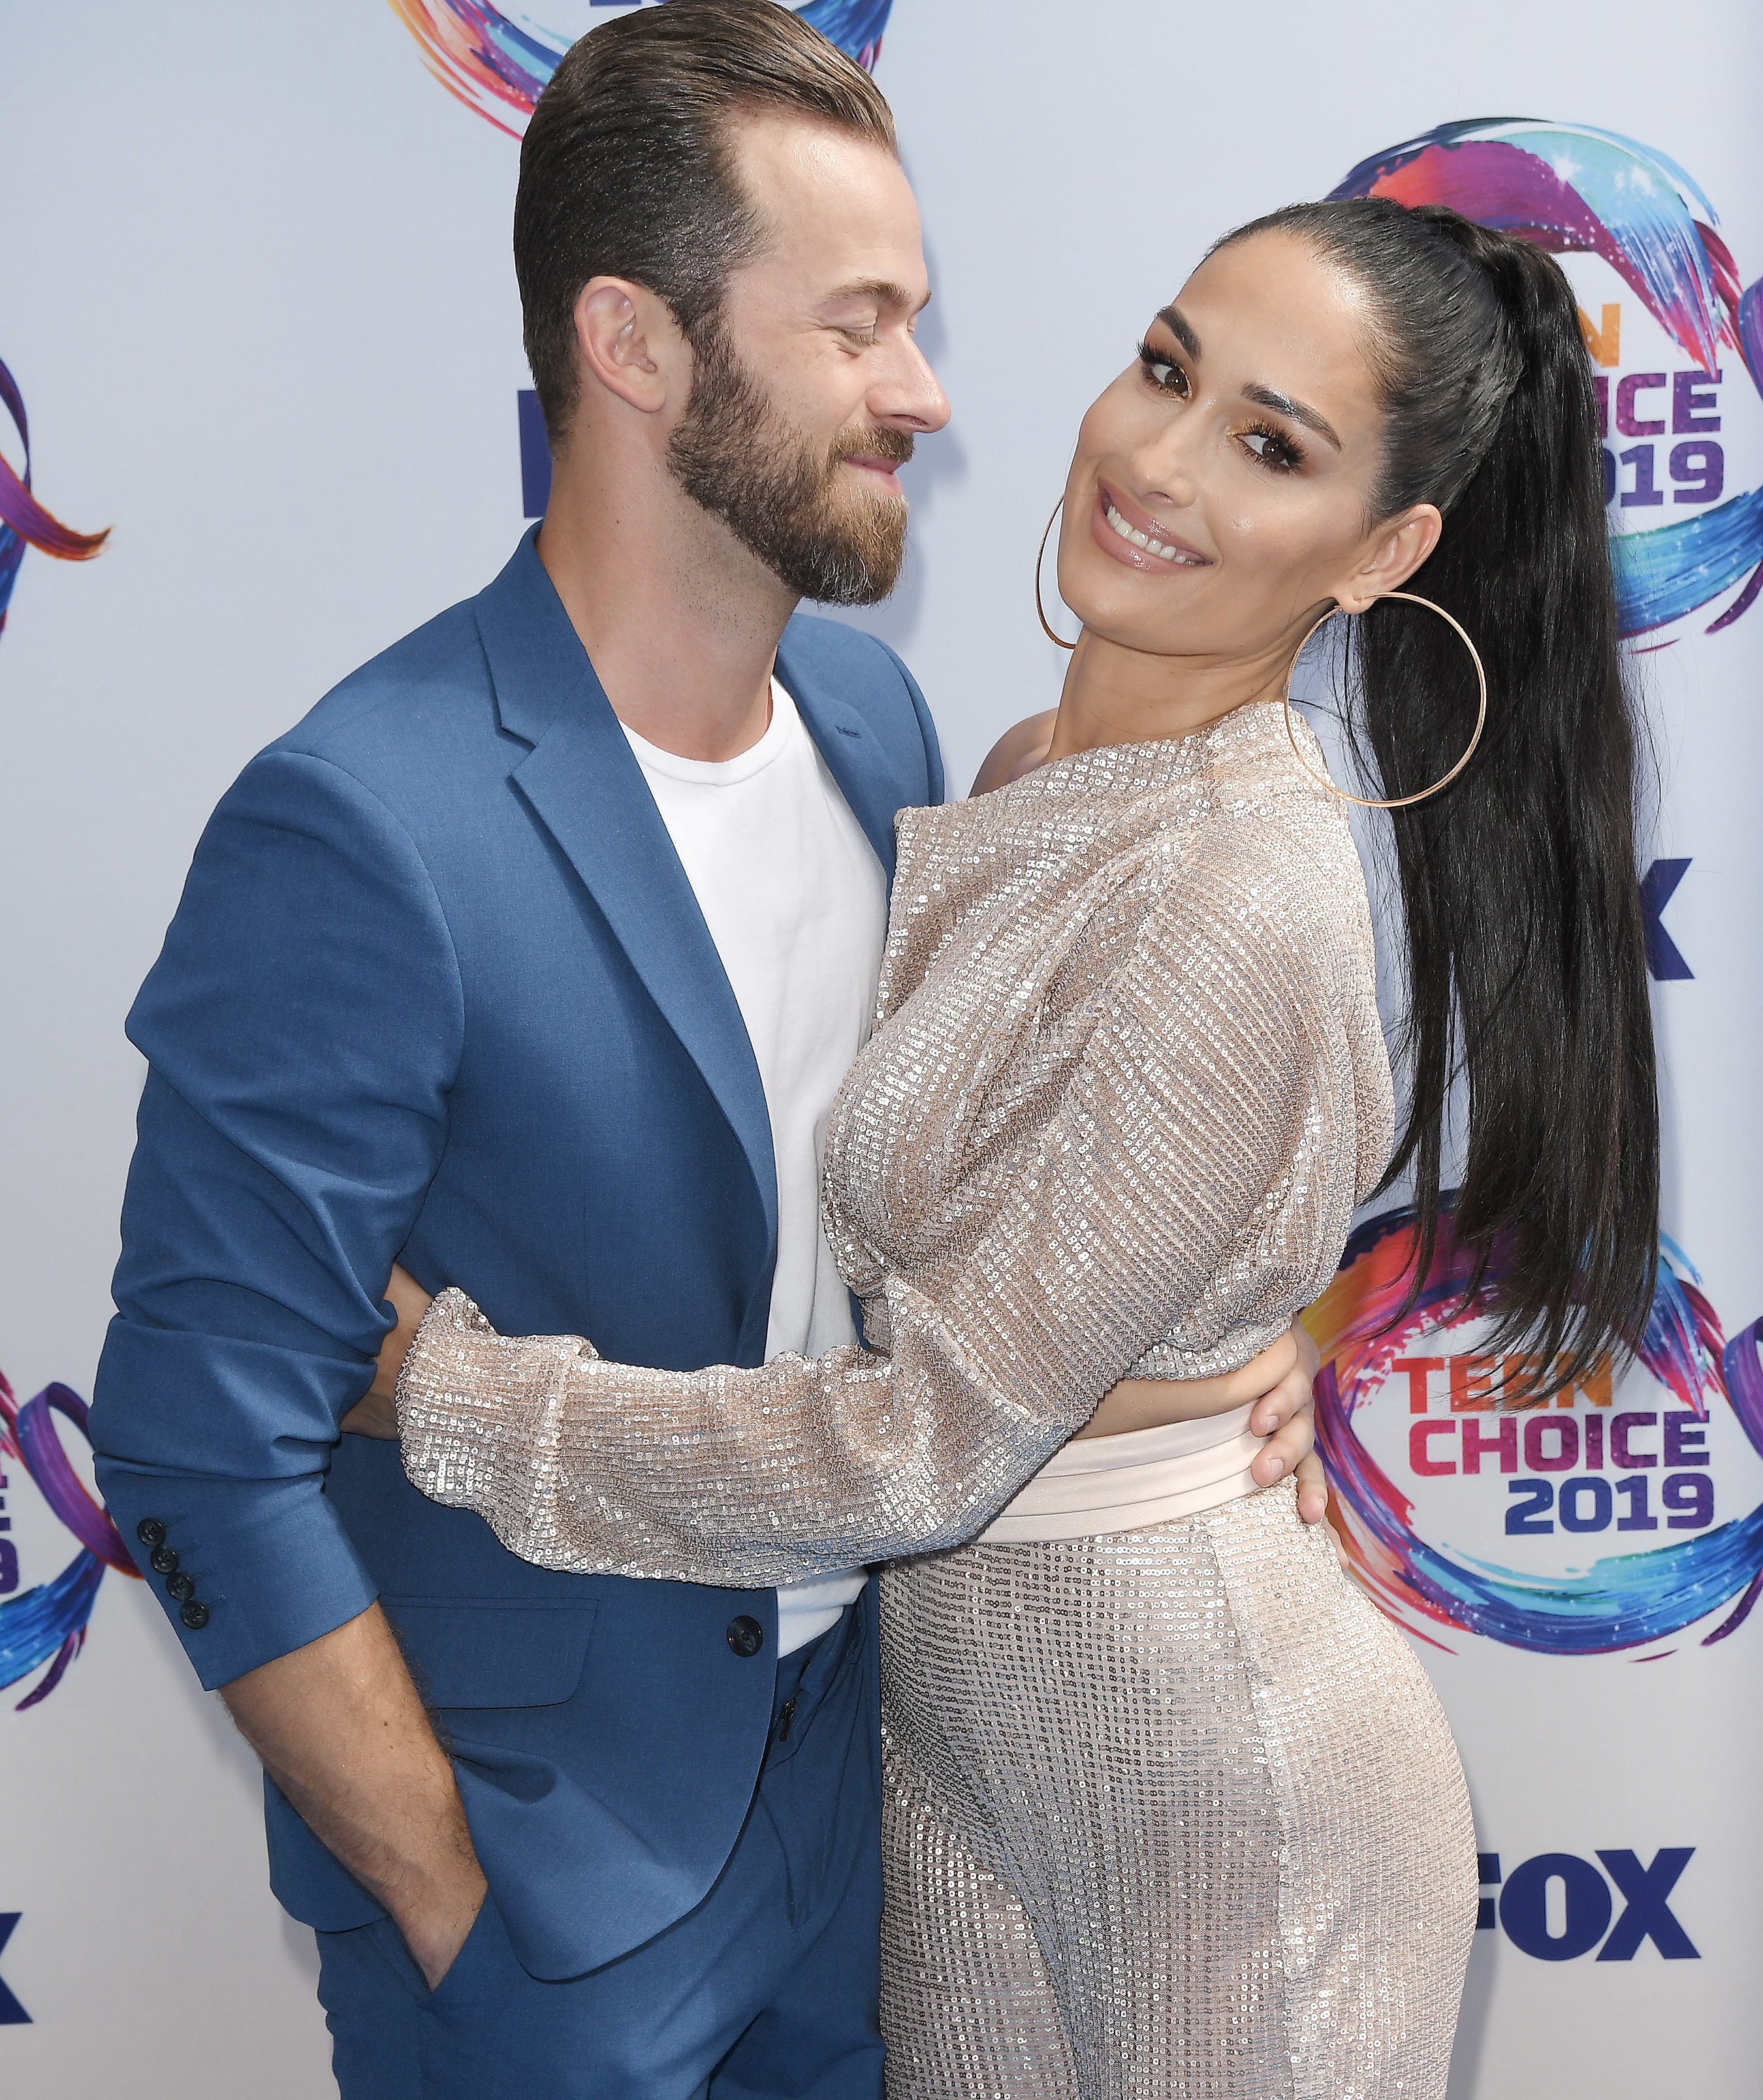 (L-R) Artem Chigvintsev and Nikki Bella